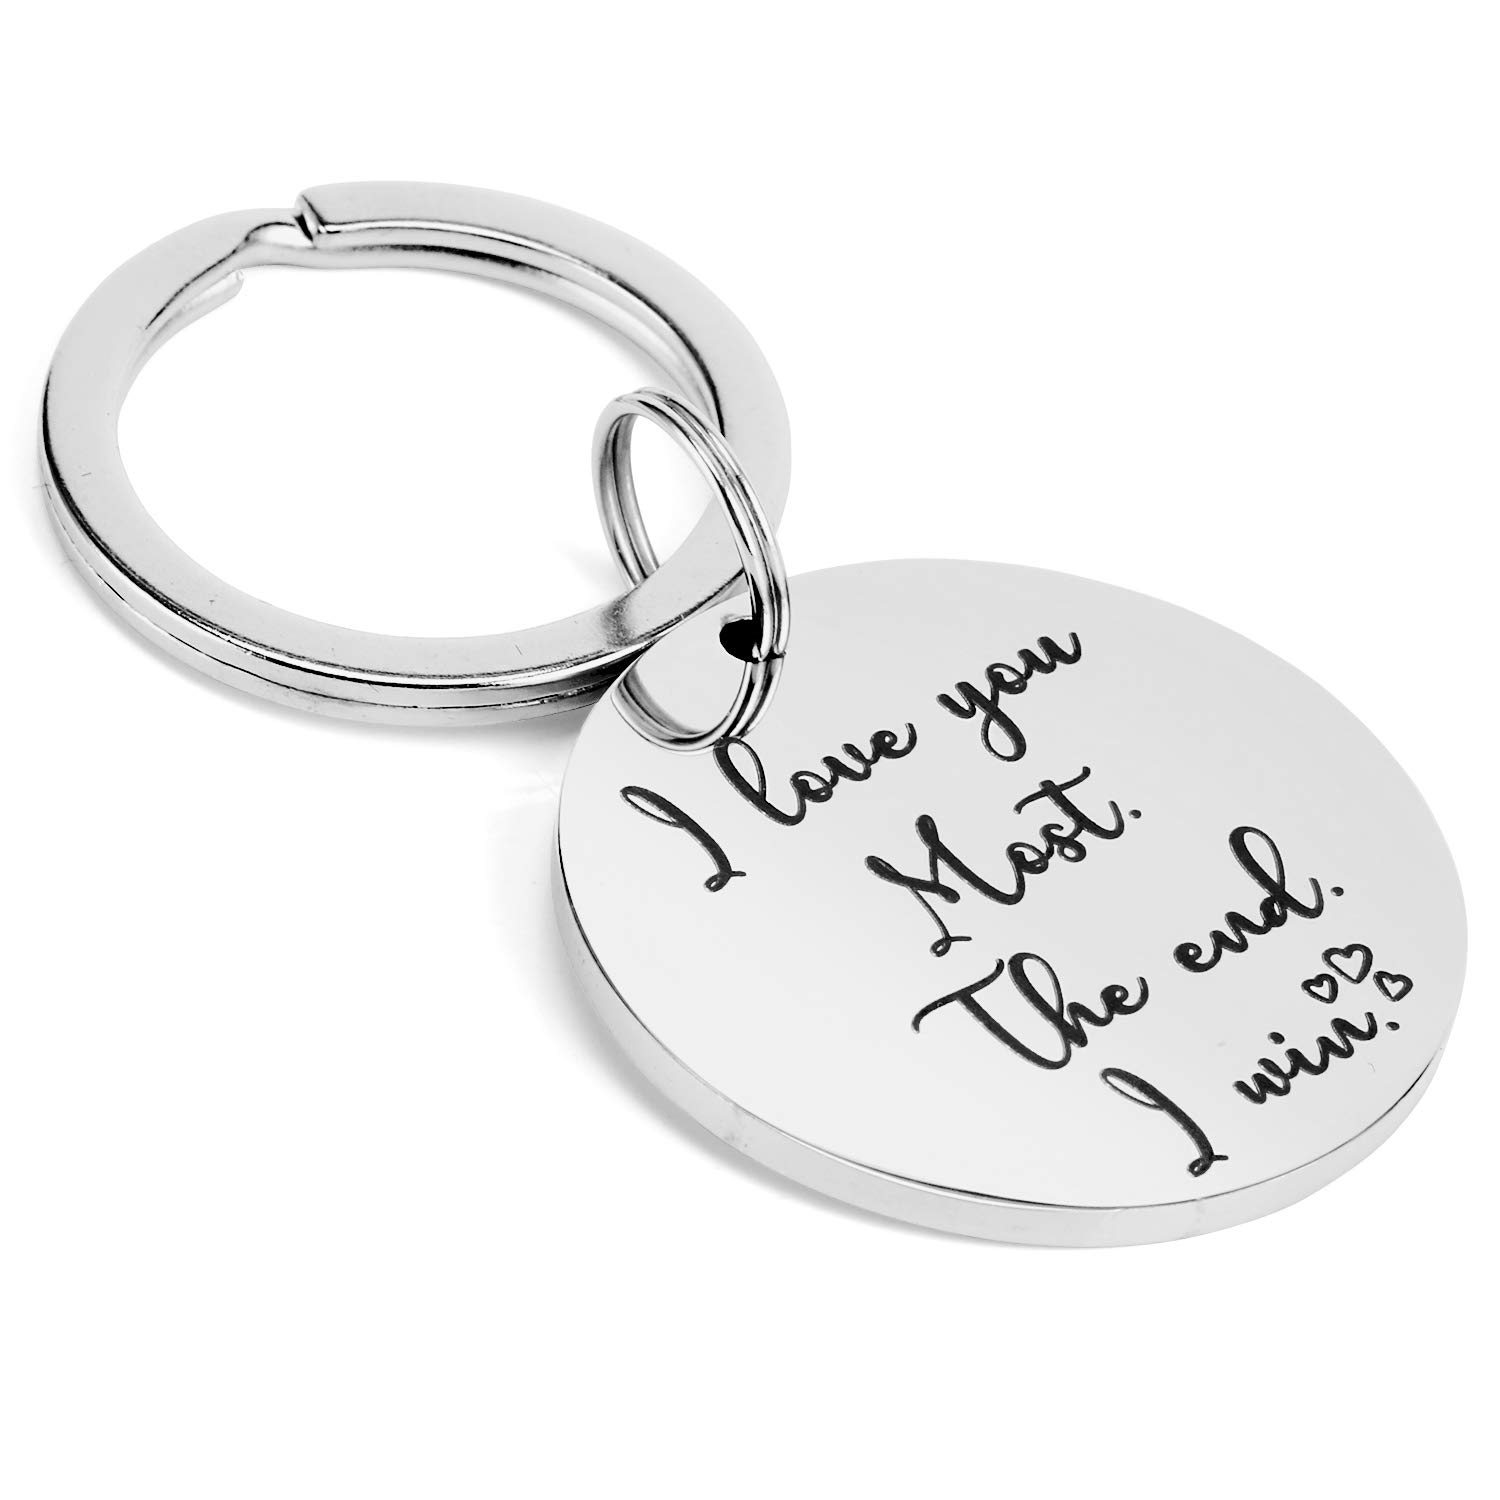 Funny Couple KeyChain Gifts for Husband Wife Boyfriend Girlfriend BFF,Sweet Gag Gifts for Anniversary Birthday Wedding Valentine Day- I Love You Most The End I Win